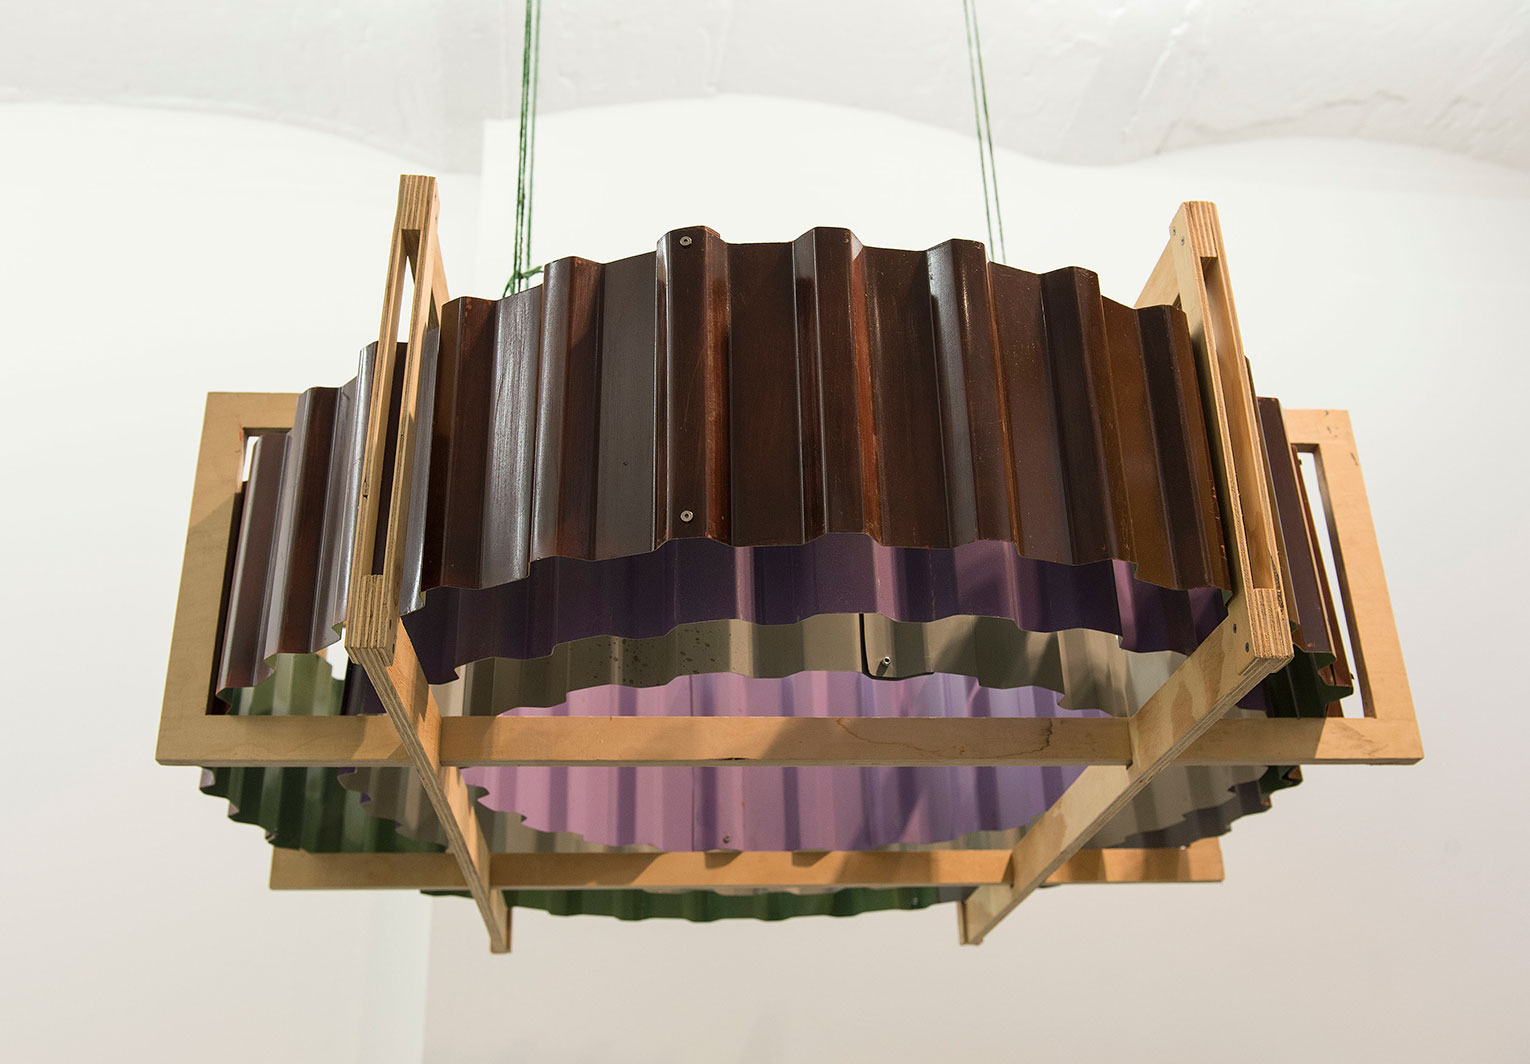 <b>Title:</b>To The Fore<br /><b>Year:</b>2014<br /><b>Medium:</b>Wood, metal, and paint<br /><b>Size:</b>40 x 114 x 114 cm